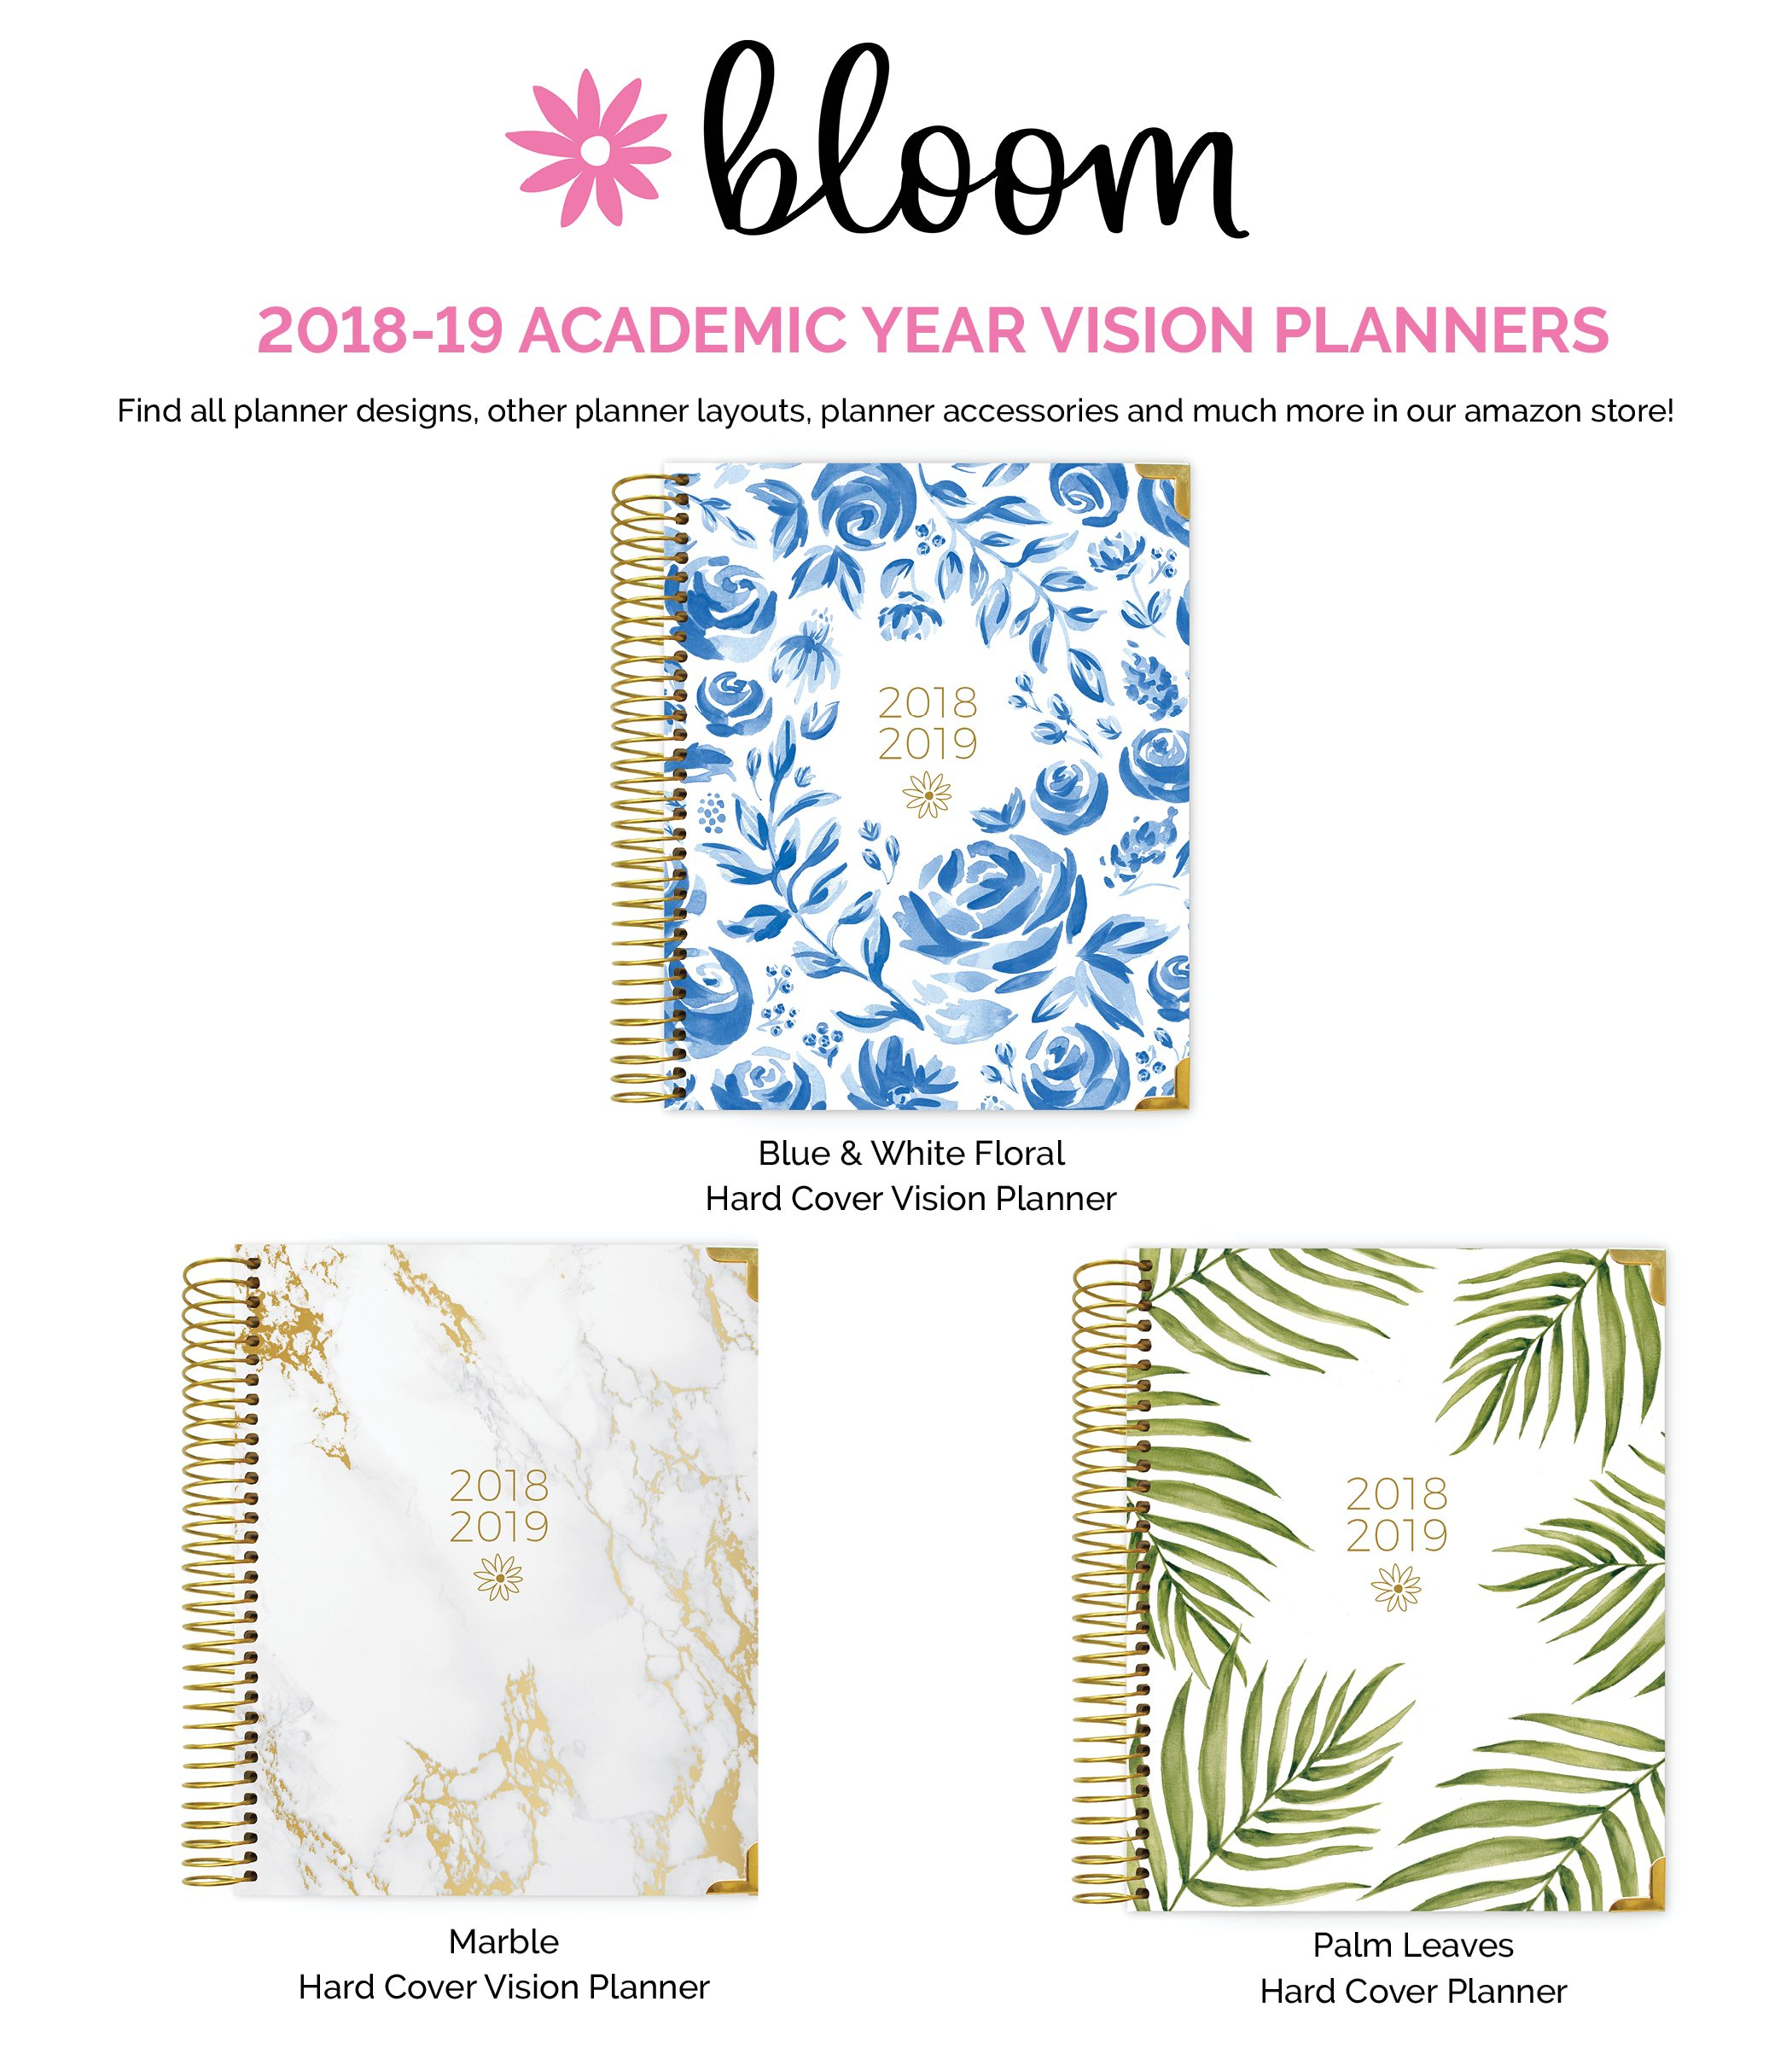 bloom daily planners 2018-2019 academic year hard cover vision planner  weekly column